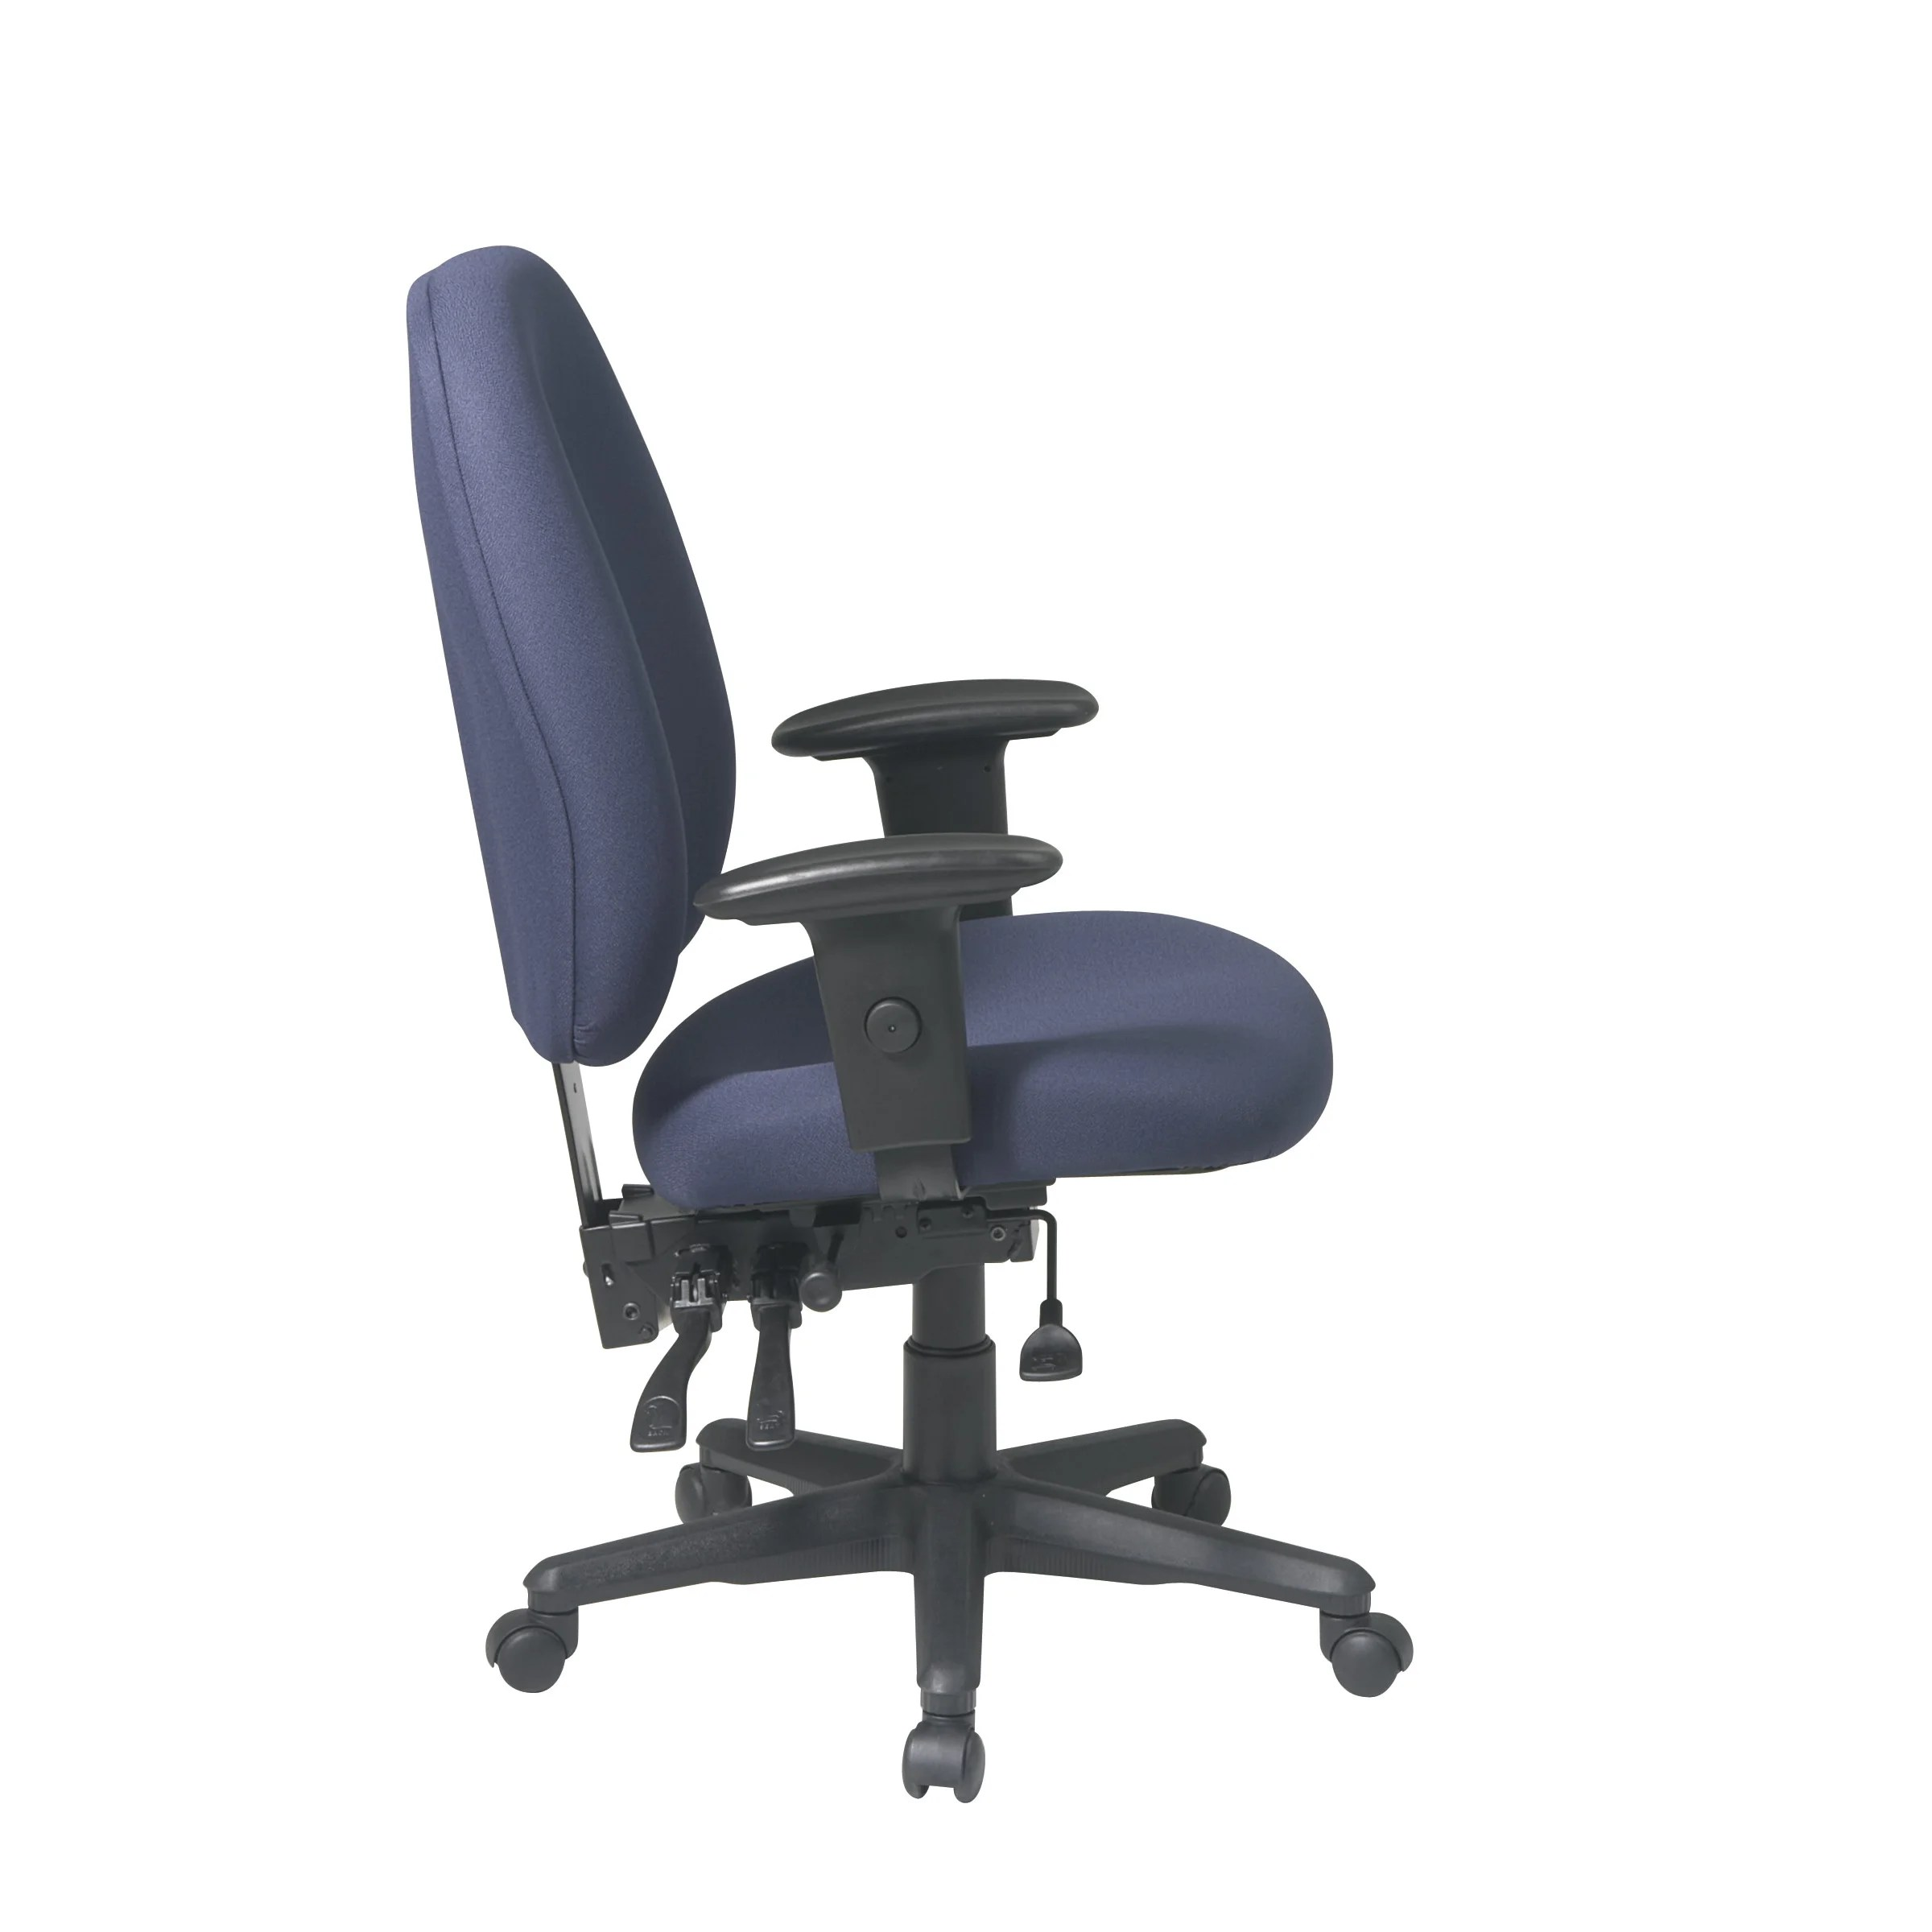 desk chair reviews forza gaming office star ergonomic high back and